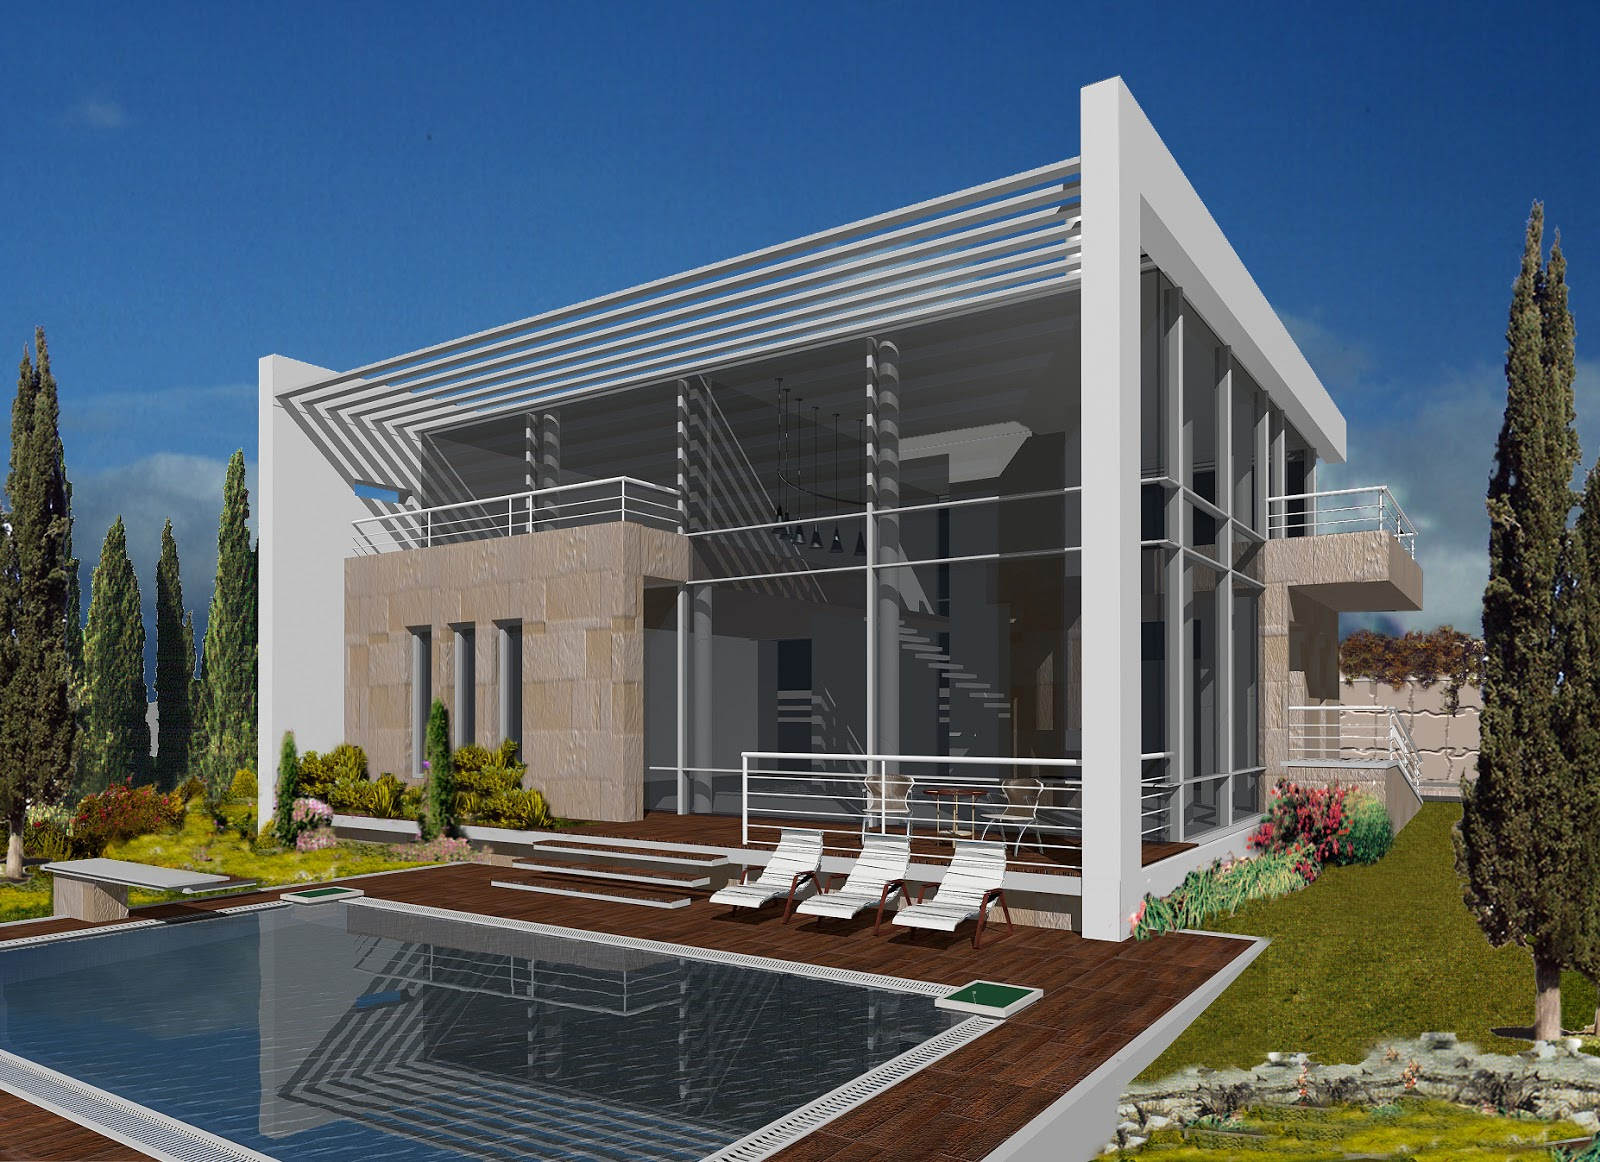 Beautiful modern homes latest mediterranean homes exterior designs home decorating Stunning modern home exterior designs